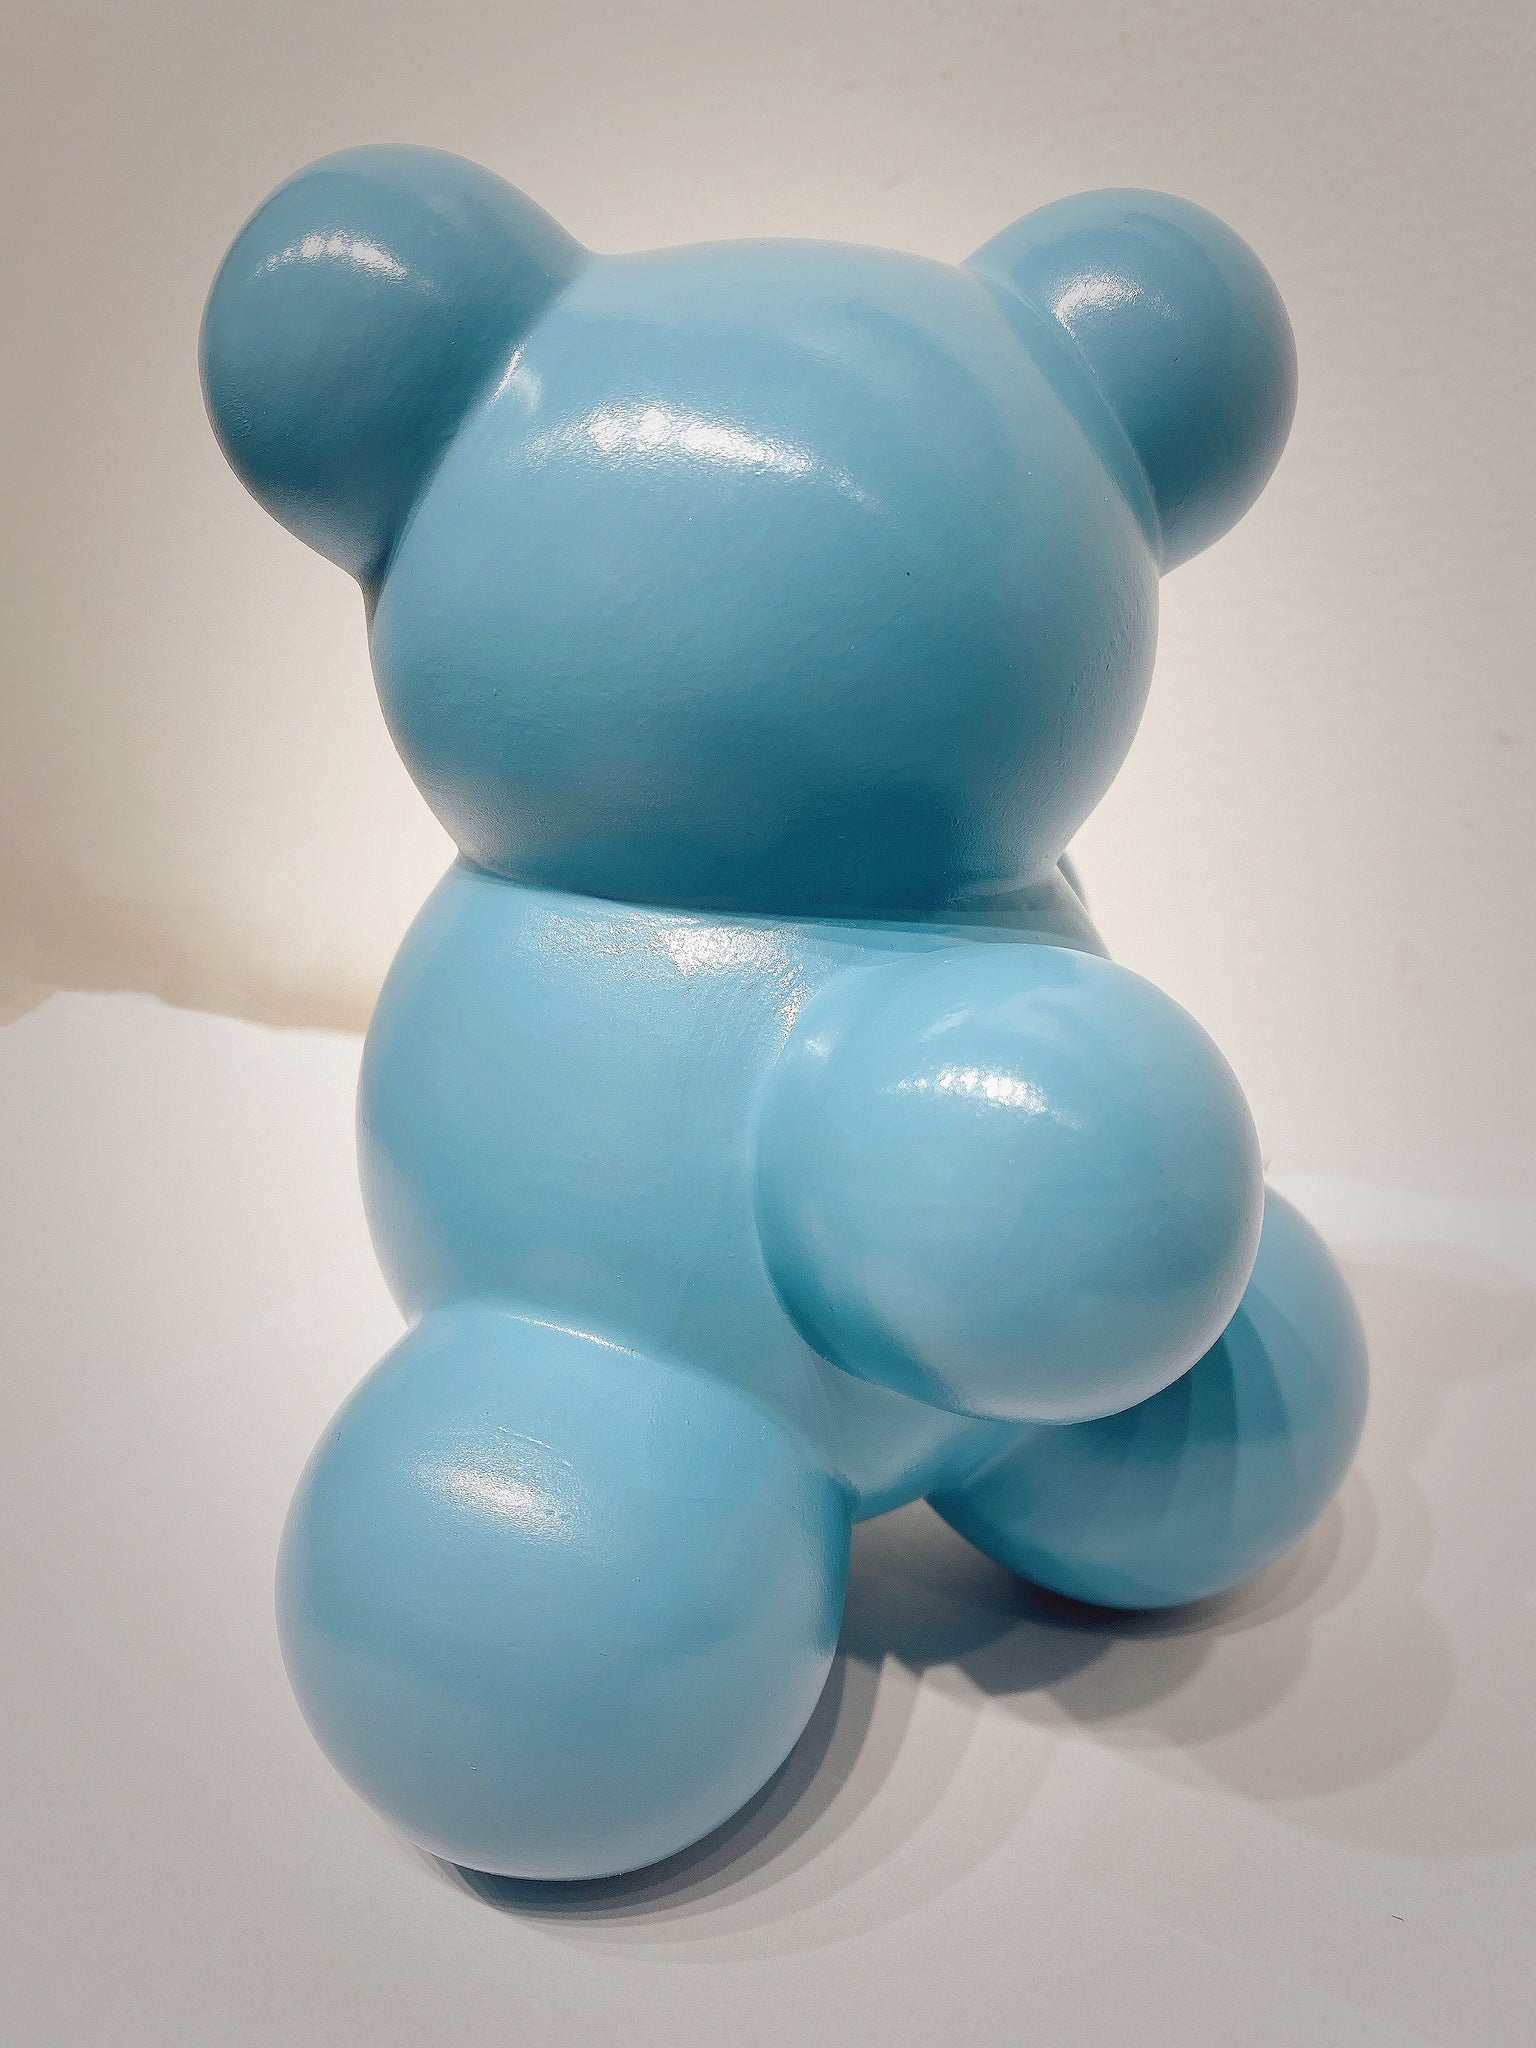 Baby MoBear, the Molecular Bear #4 Pure Blue by Anyuta Gusakova